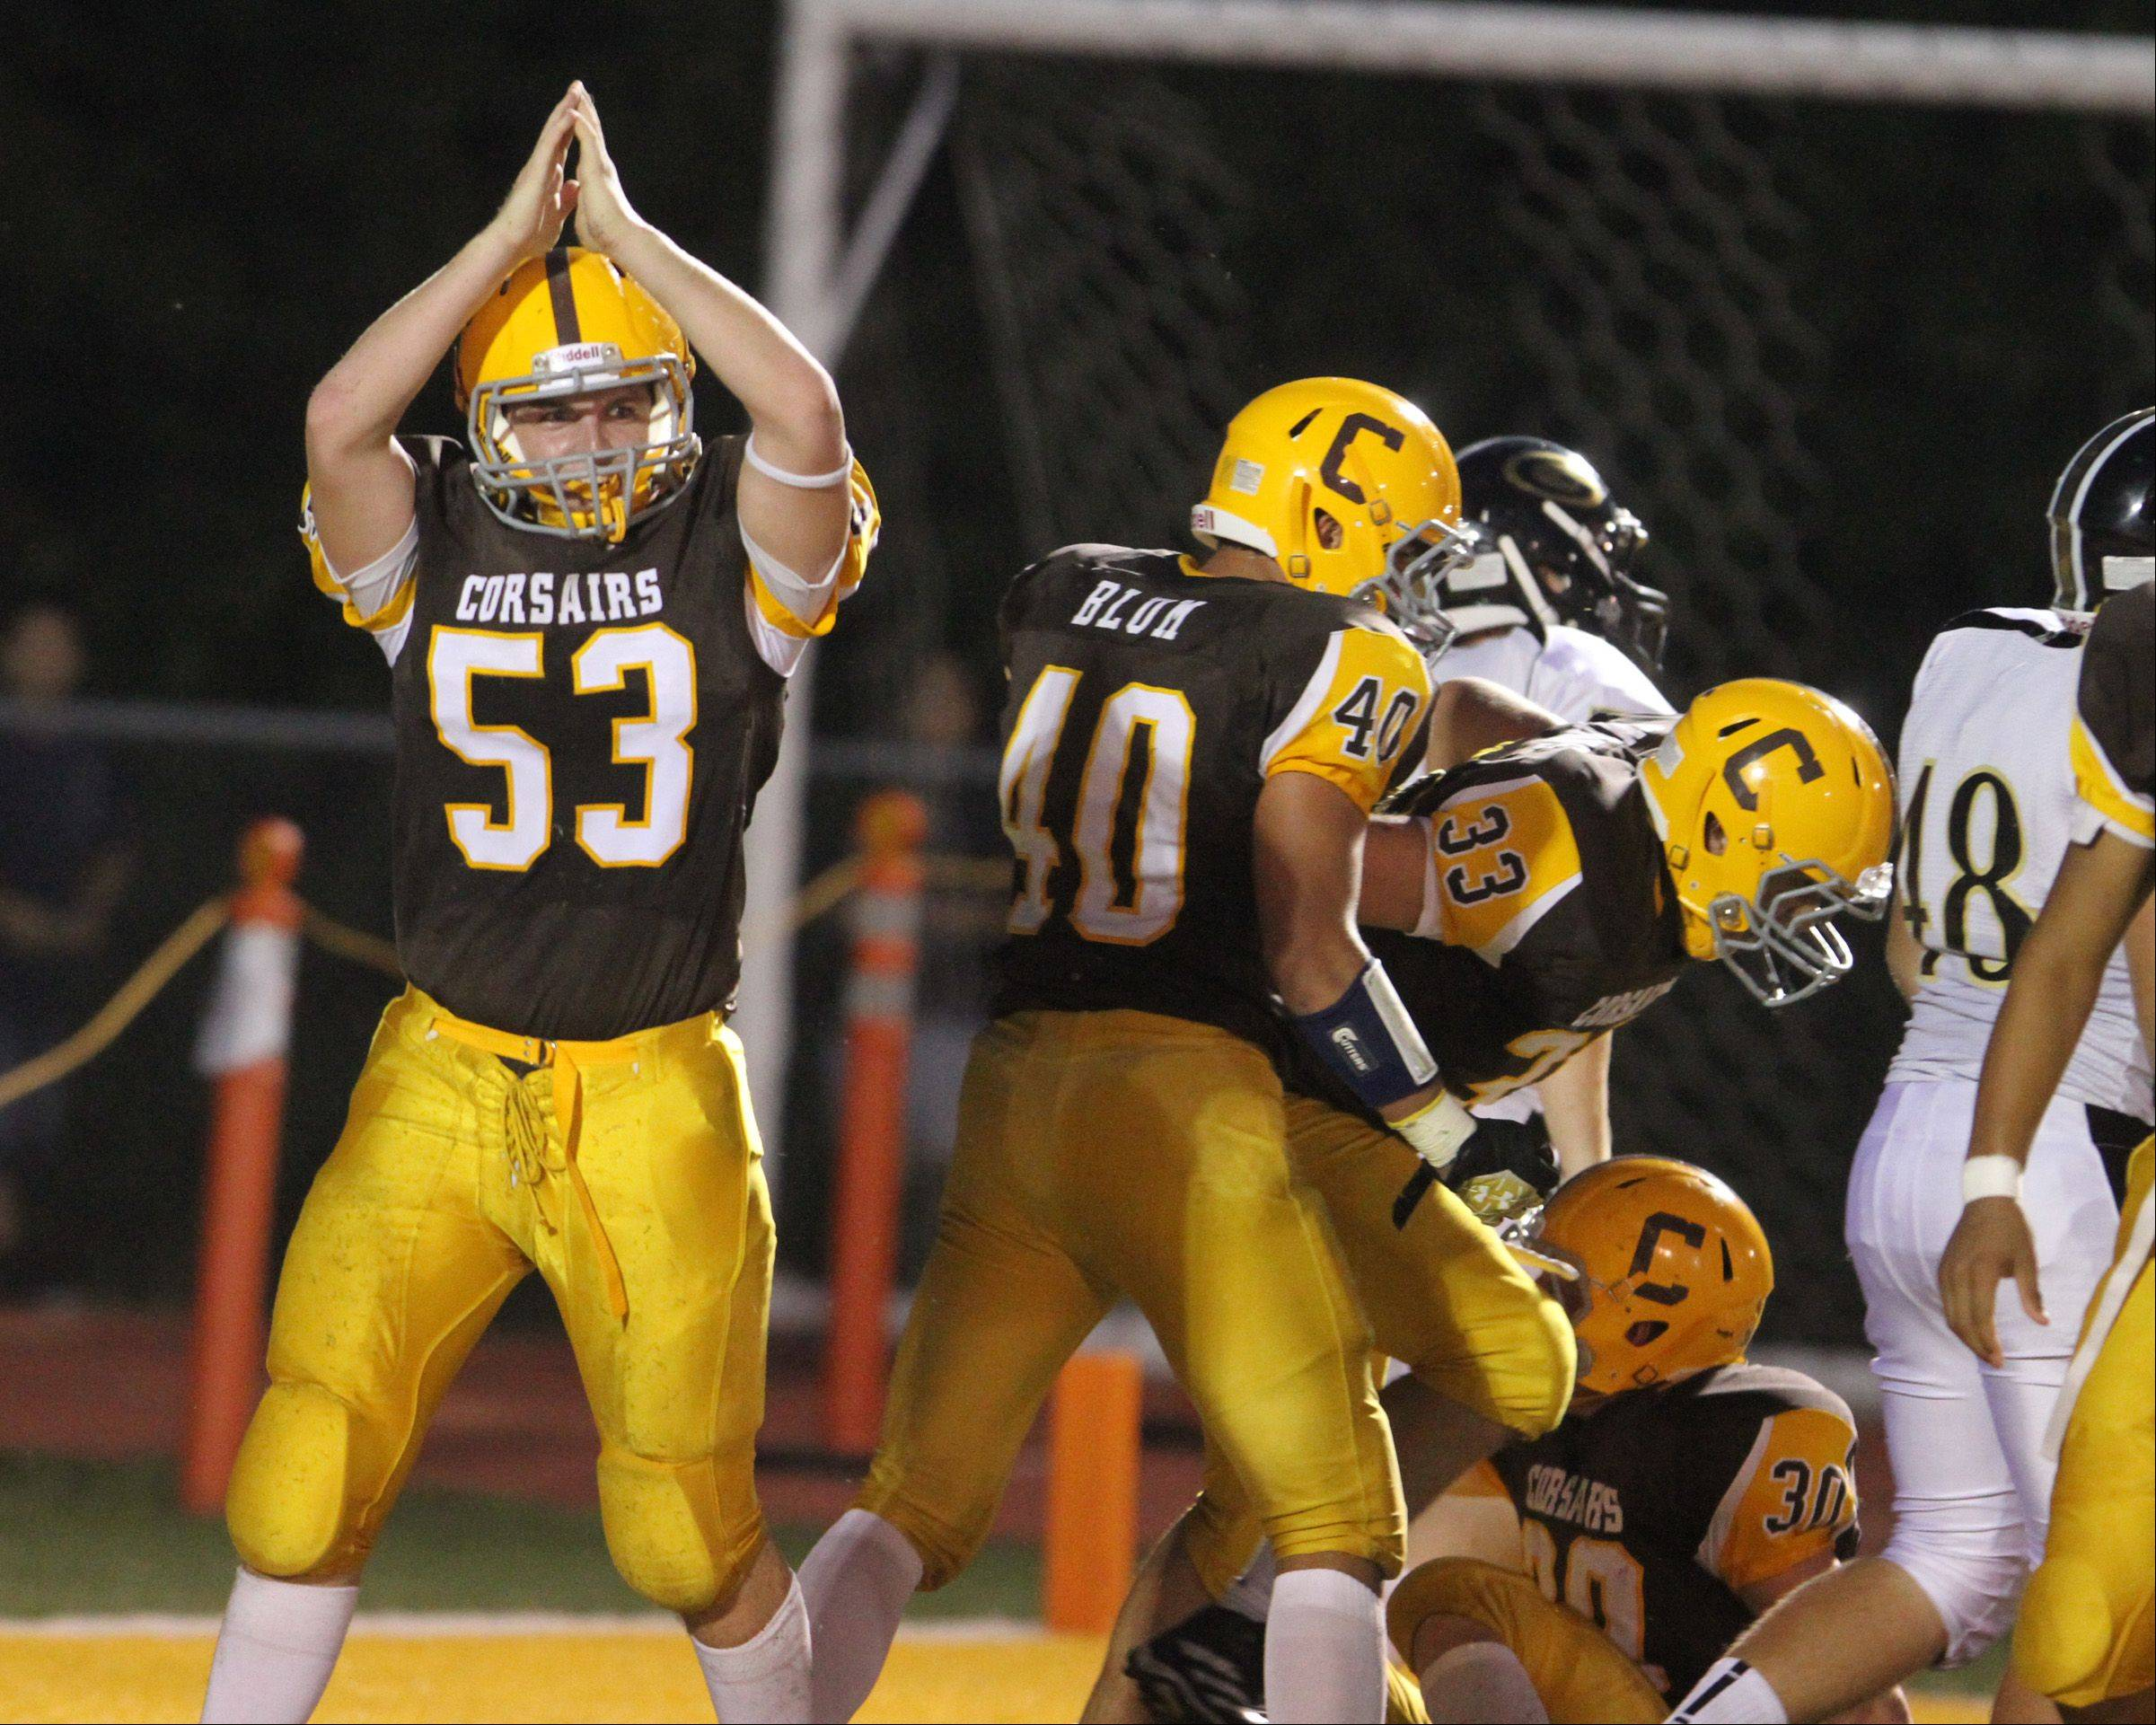 Carmel's Grant Stredler signals a safety against Glenbard North in the first quarter at Carmel on Friday.